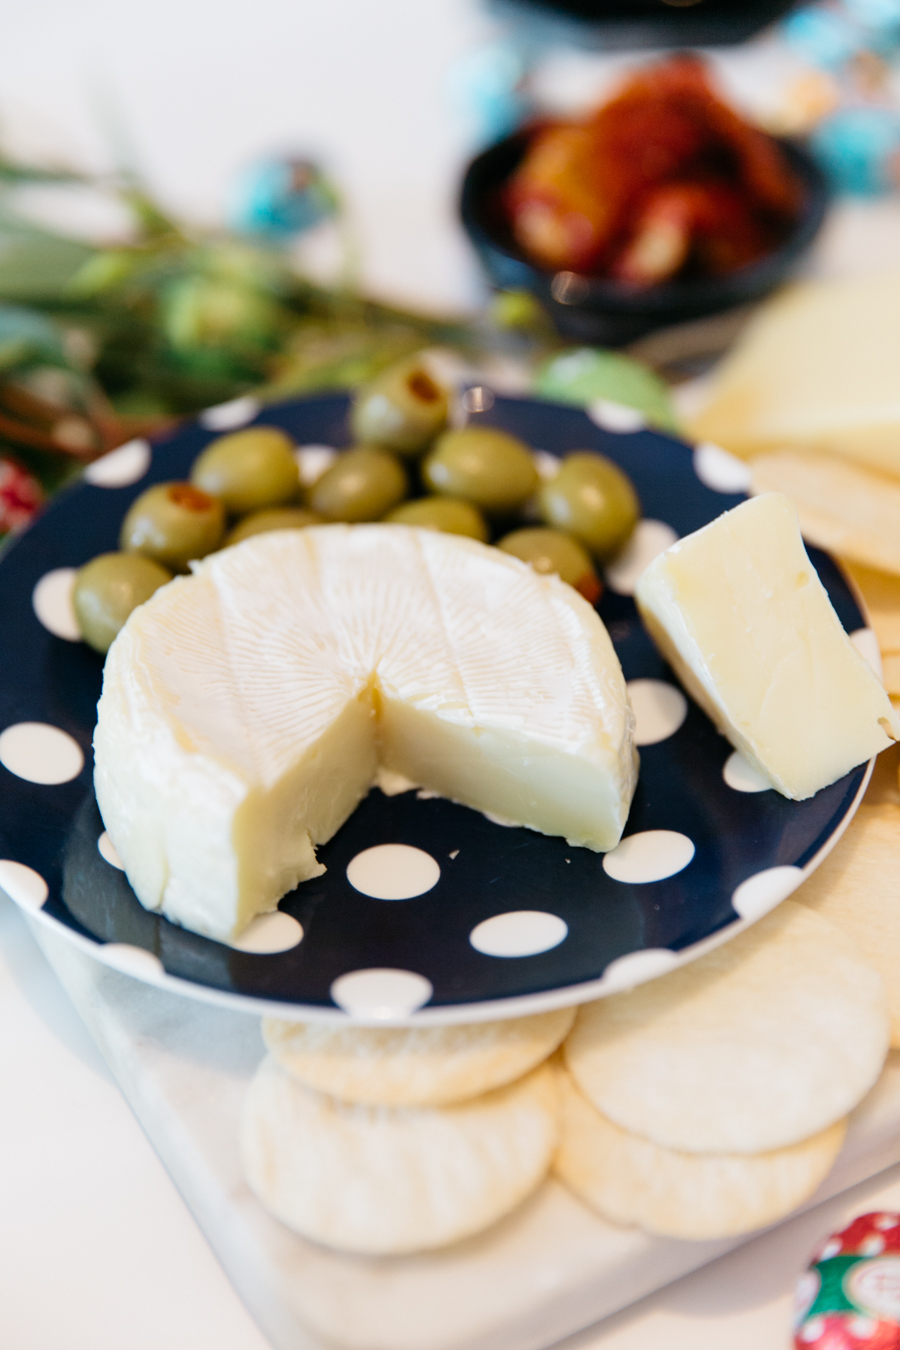 Camembert cheese with stuffed olives.